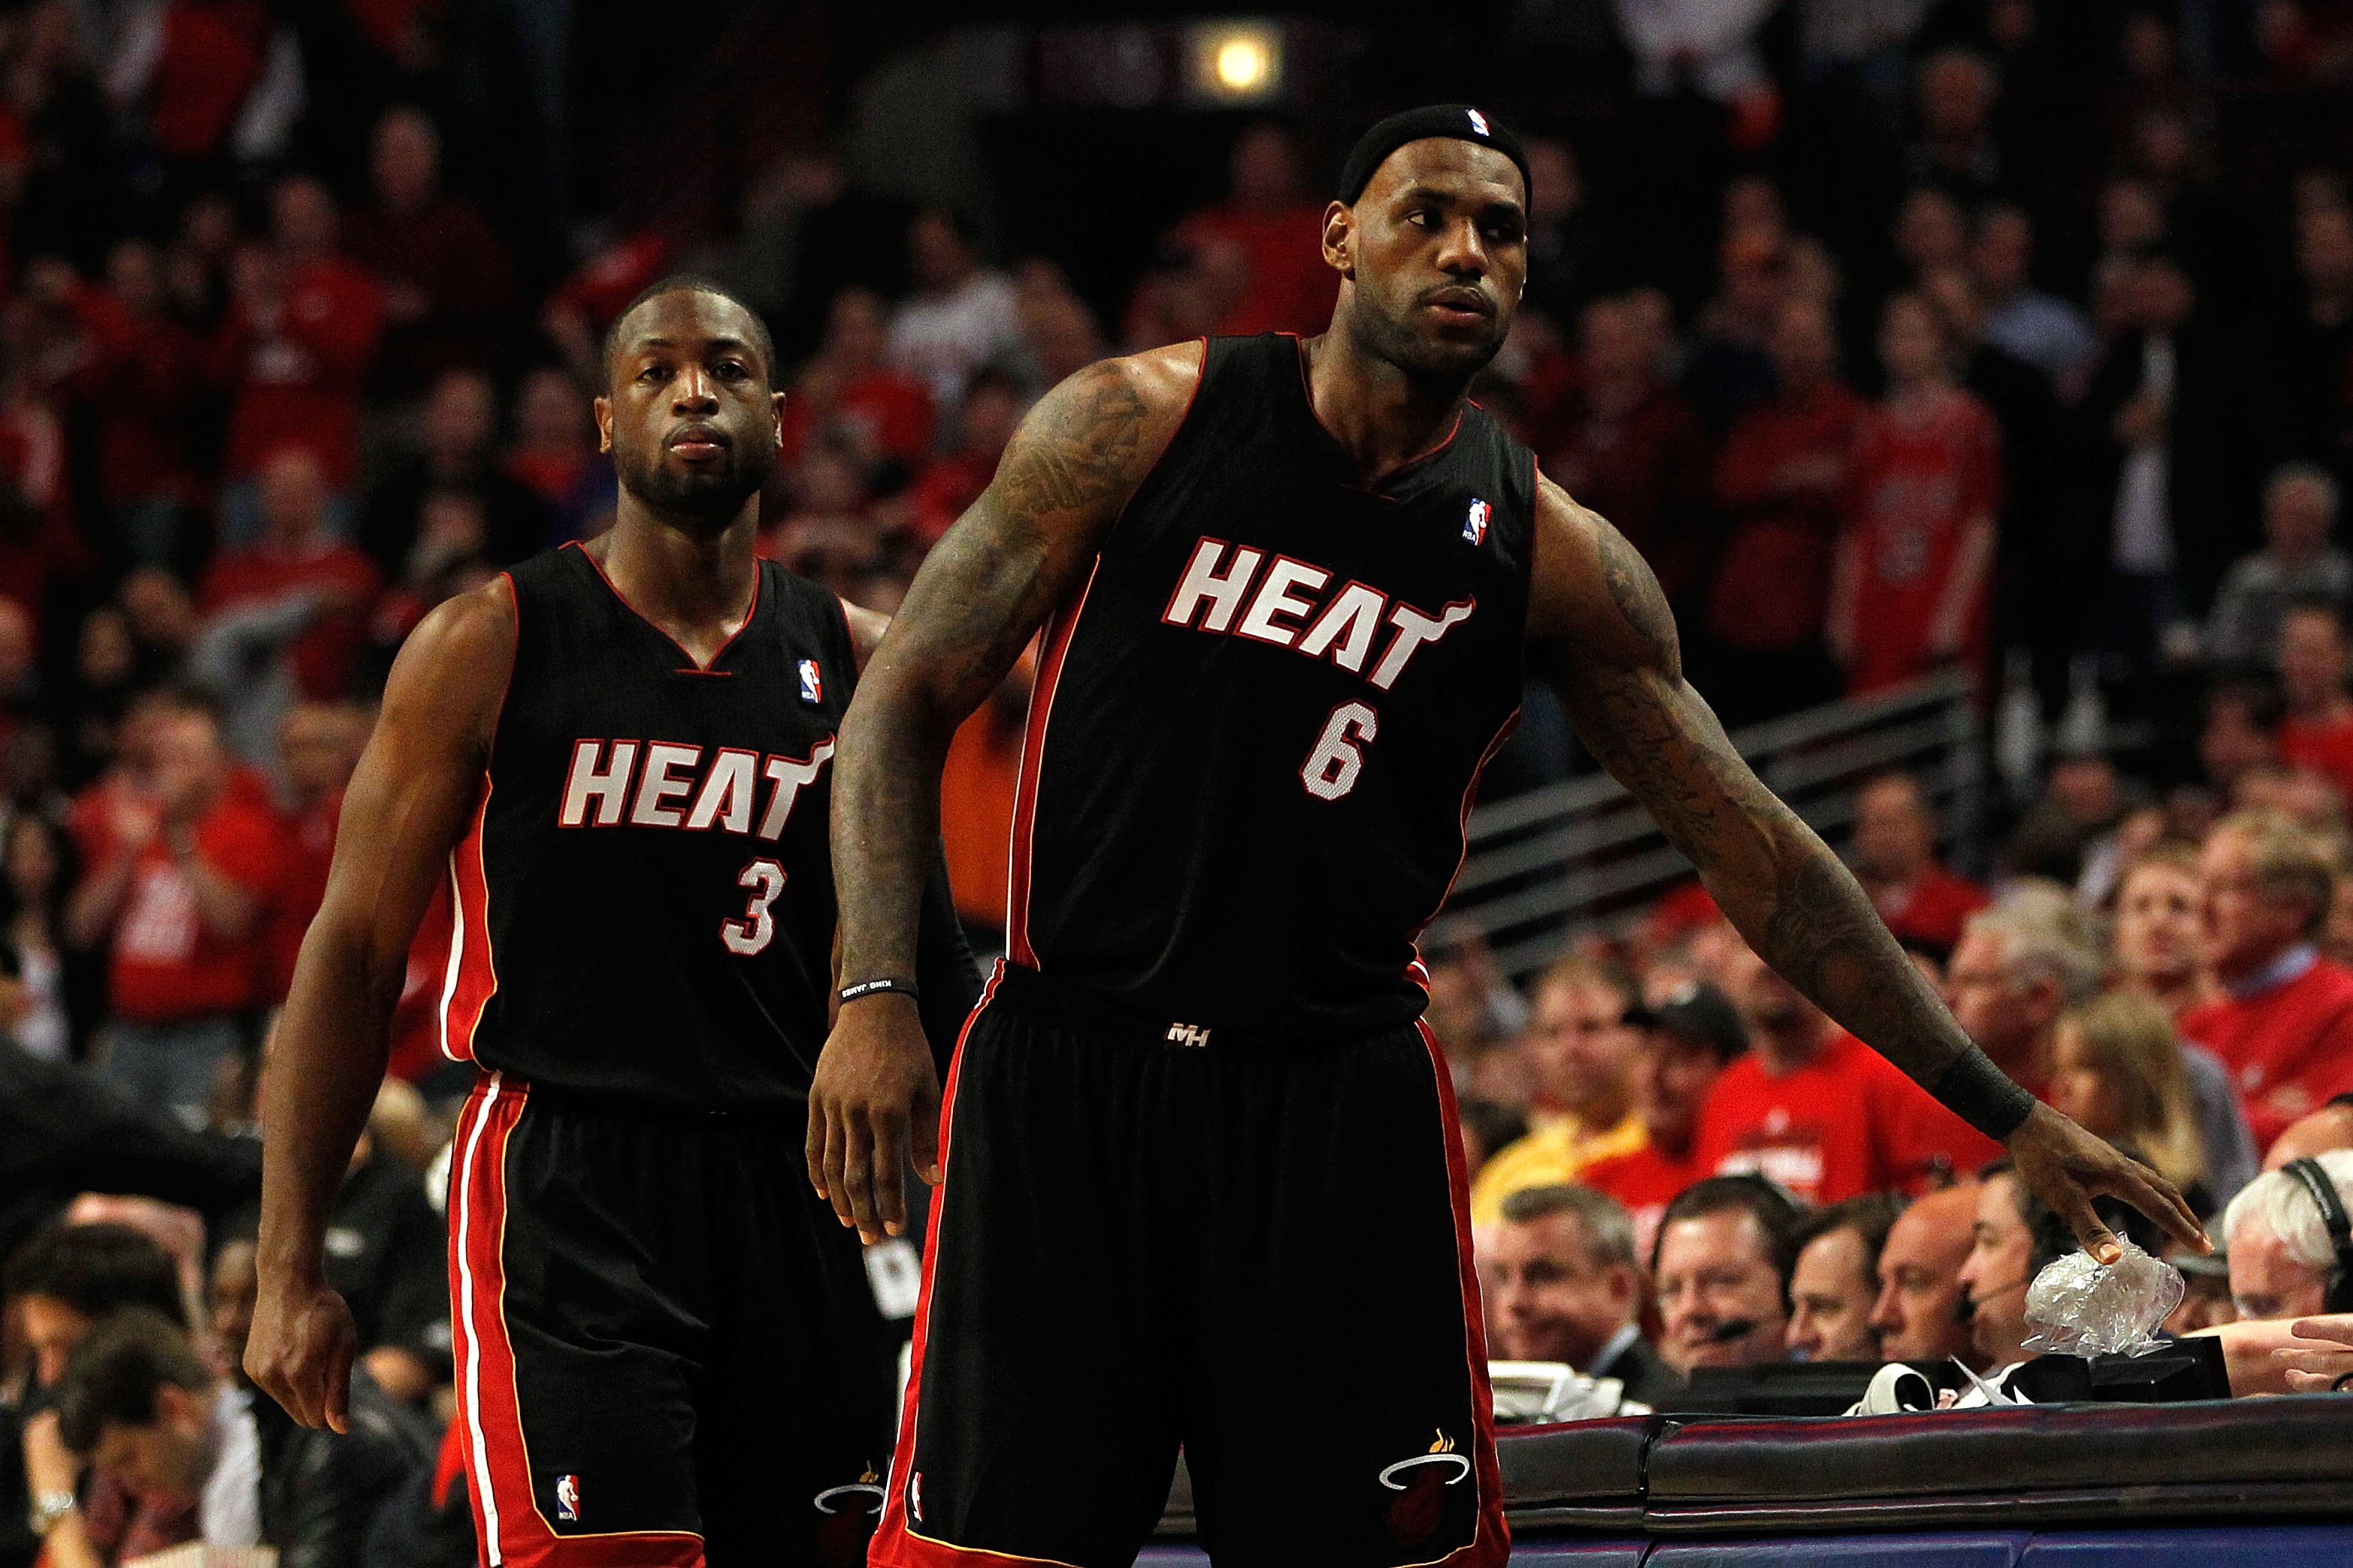 SI.com: Embarrassing performance for James, Wade